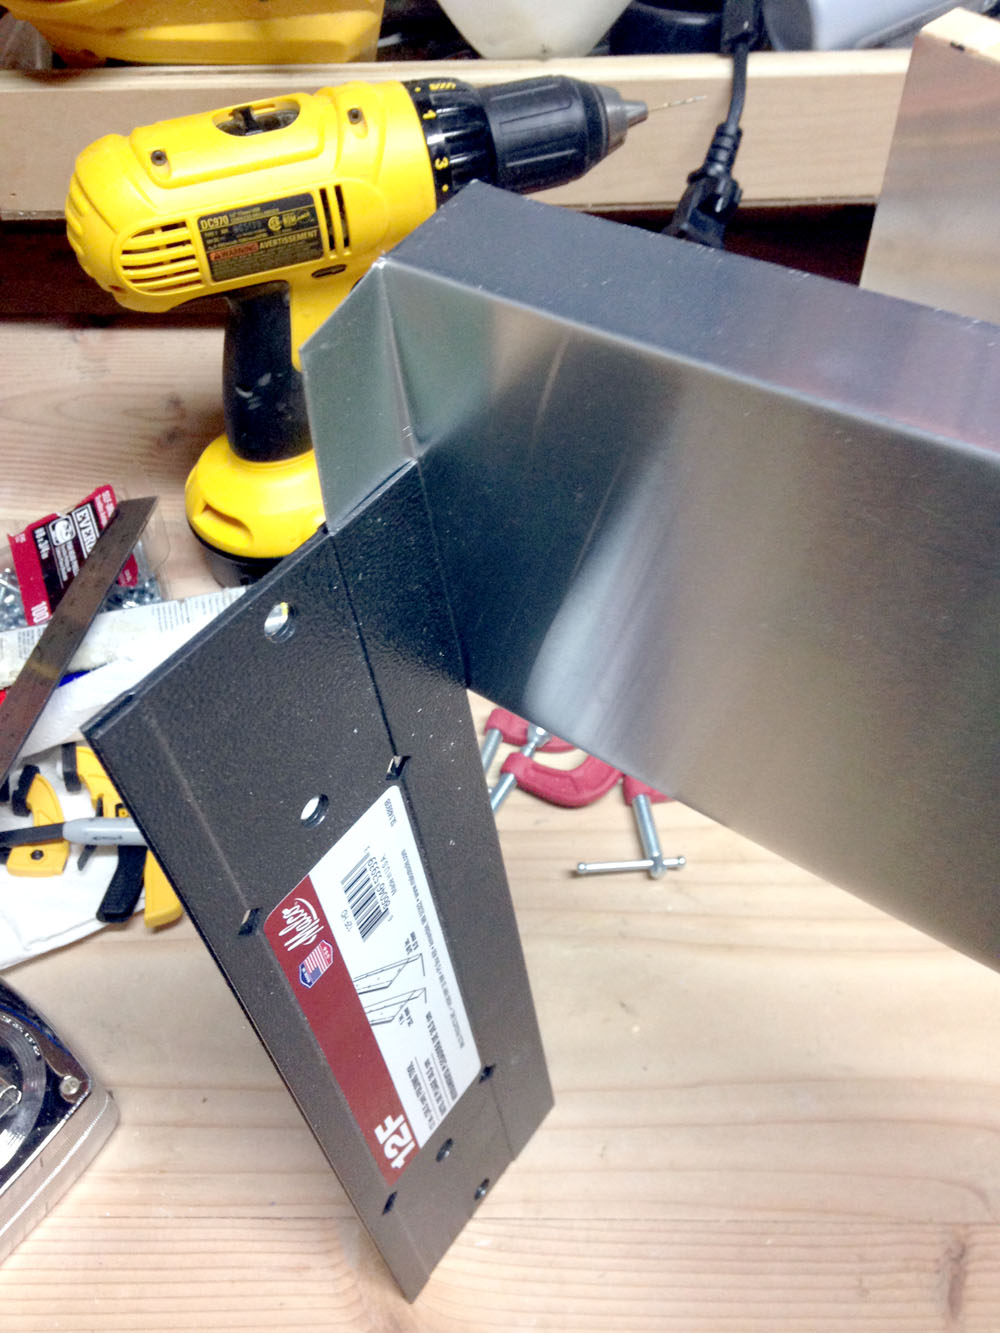 How to Bend Sheet Metal with a Folding Tool to Make a Robot